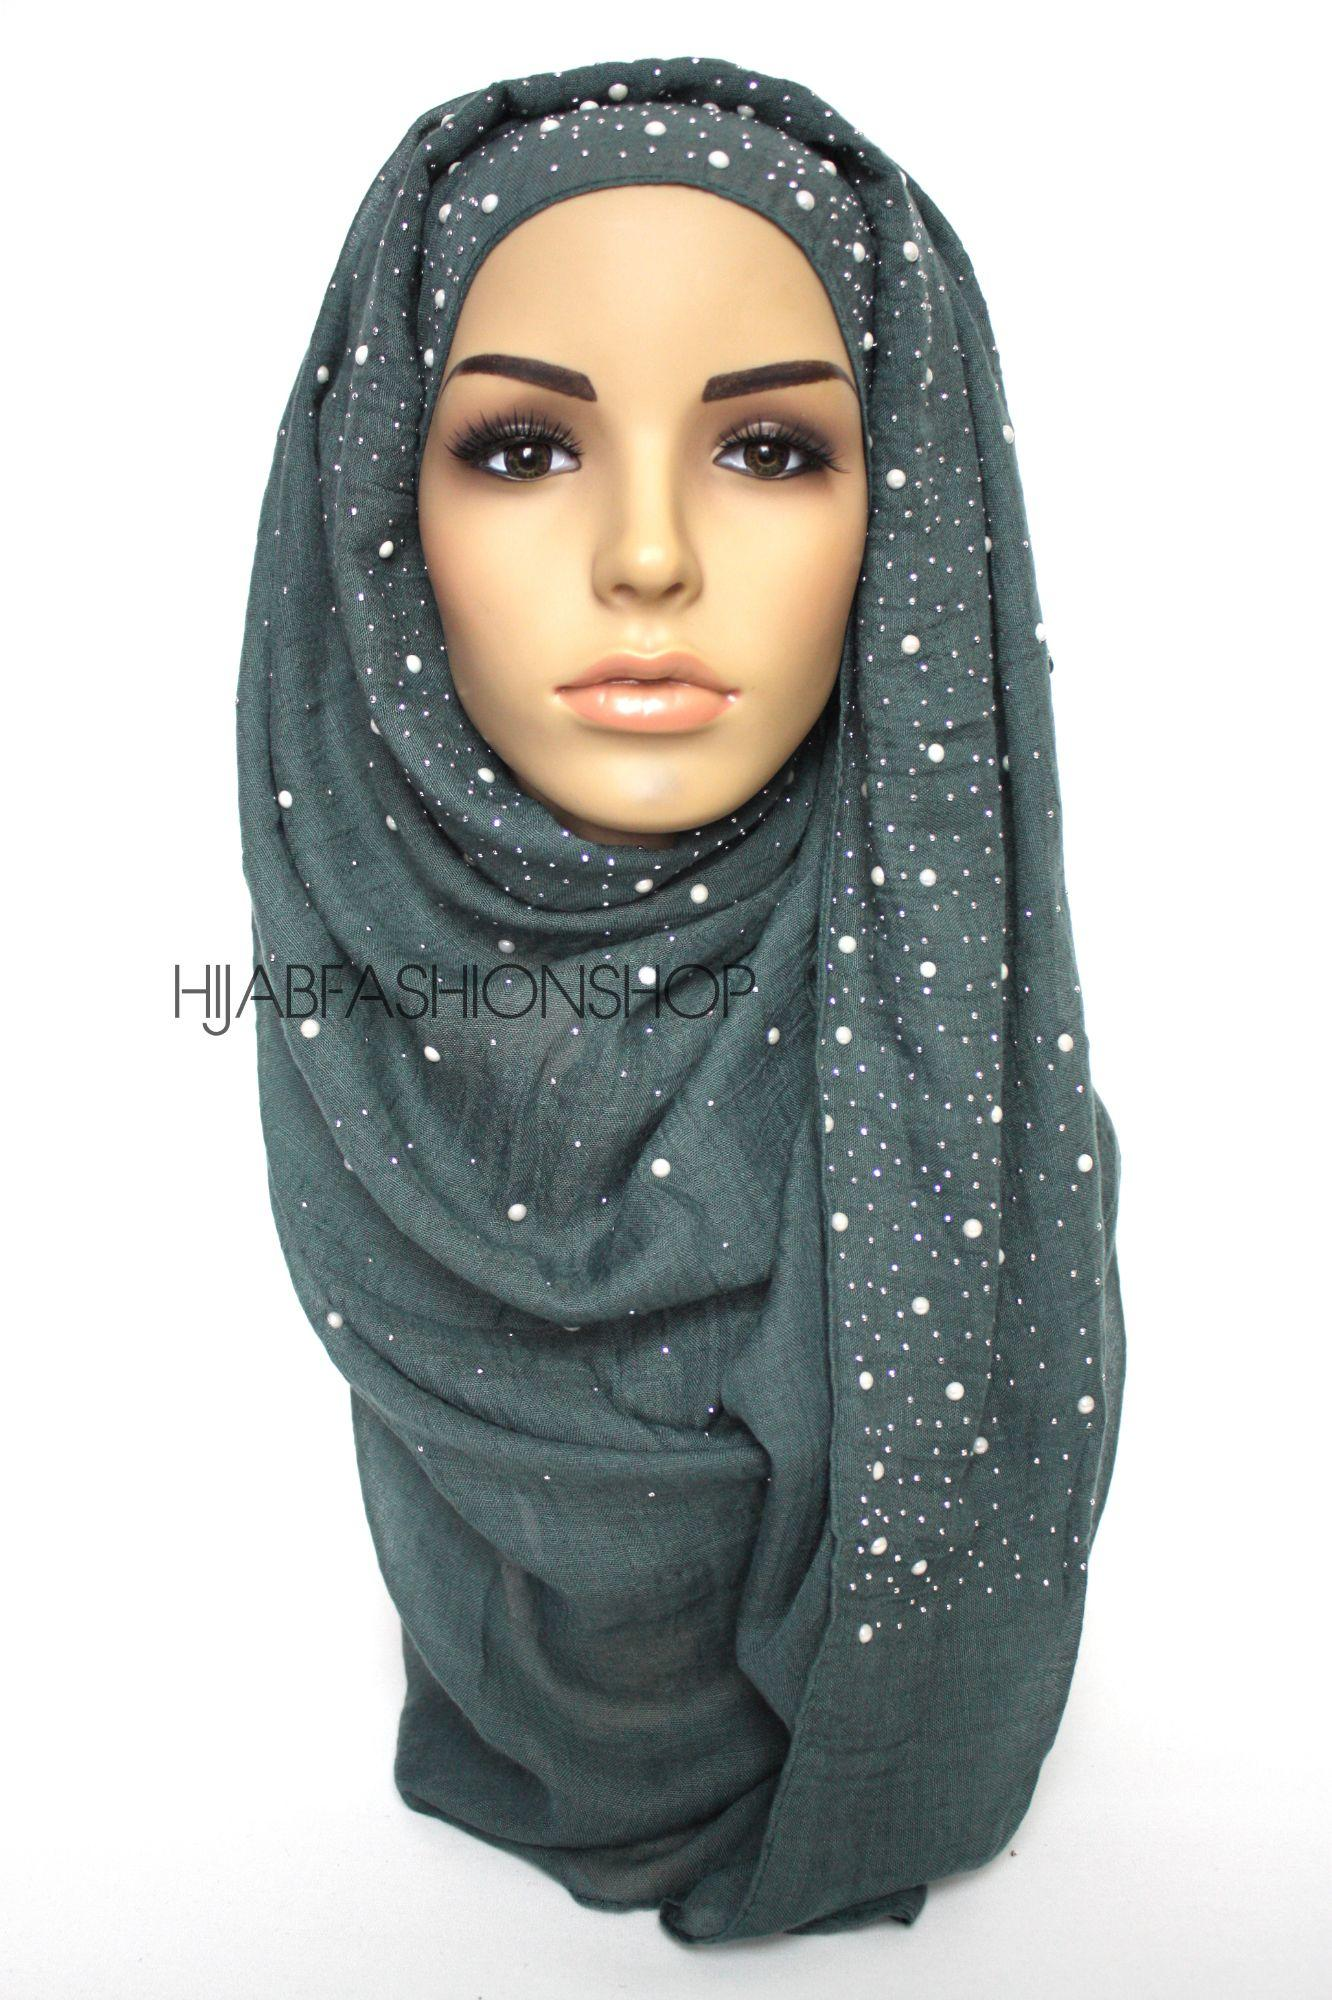 teal hijab with silver studs and pearls